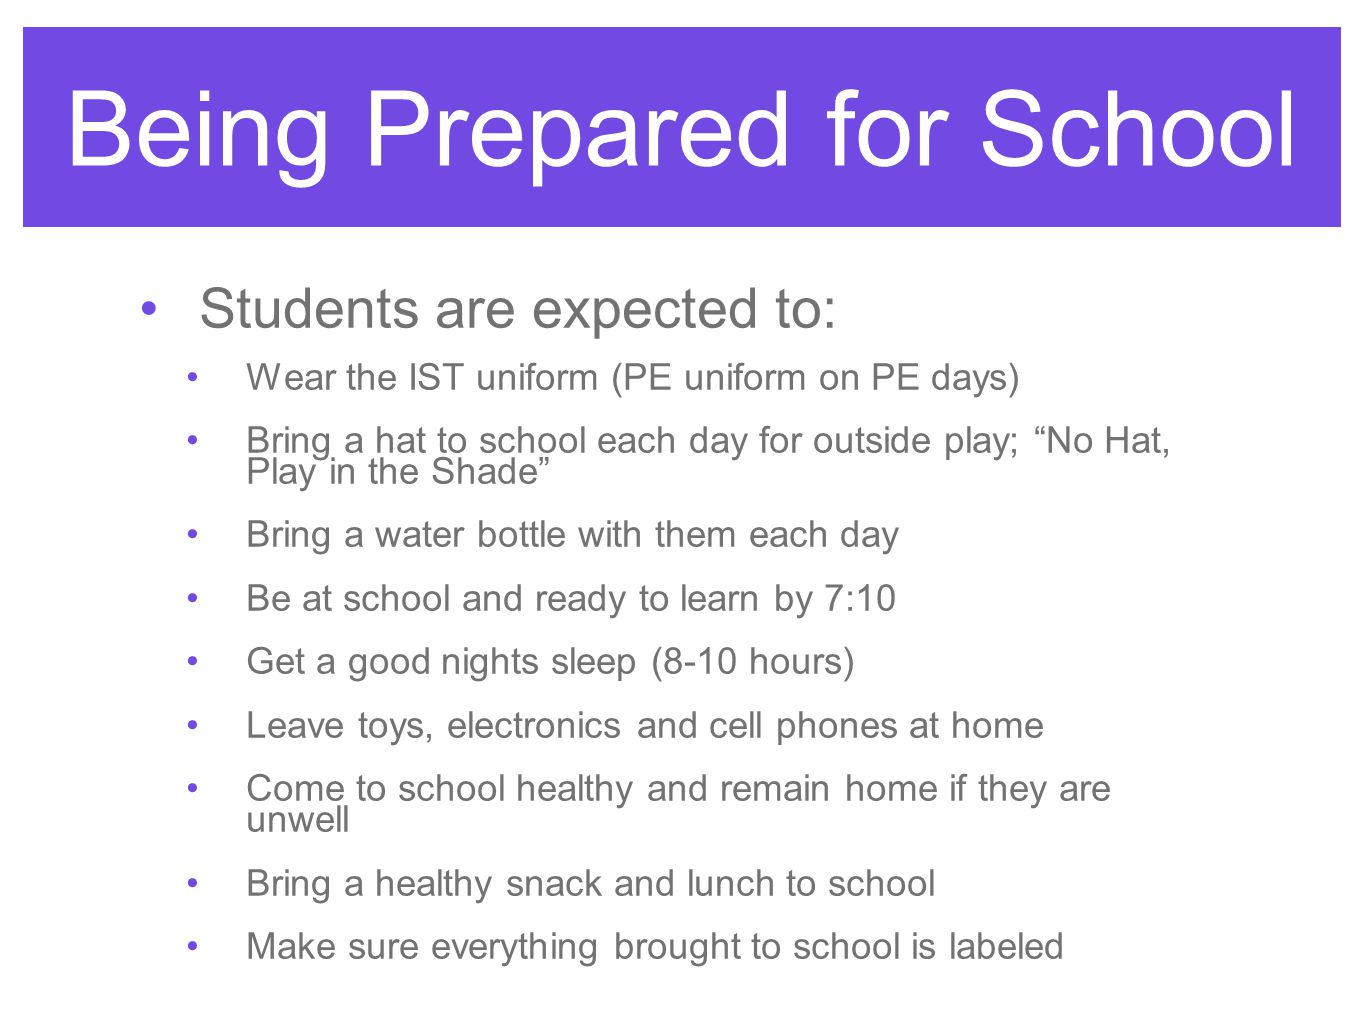 Being Prepared for School Students are expected to: Wear the IST uniform (PE uniform on PE days) Bring a hat to school each day for outside play; No Hat, Play in the Shade Bring a water bottle with them each day Be at school and ready to learn by 7:10 Get a good nights sleep (8-10 hours) Leave toys, electronics and cell phones at home Come to school healthy and remain home if they are unwell Bring a healthy snack and lunch to school Make sure everything brought to school is labeled